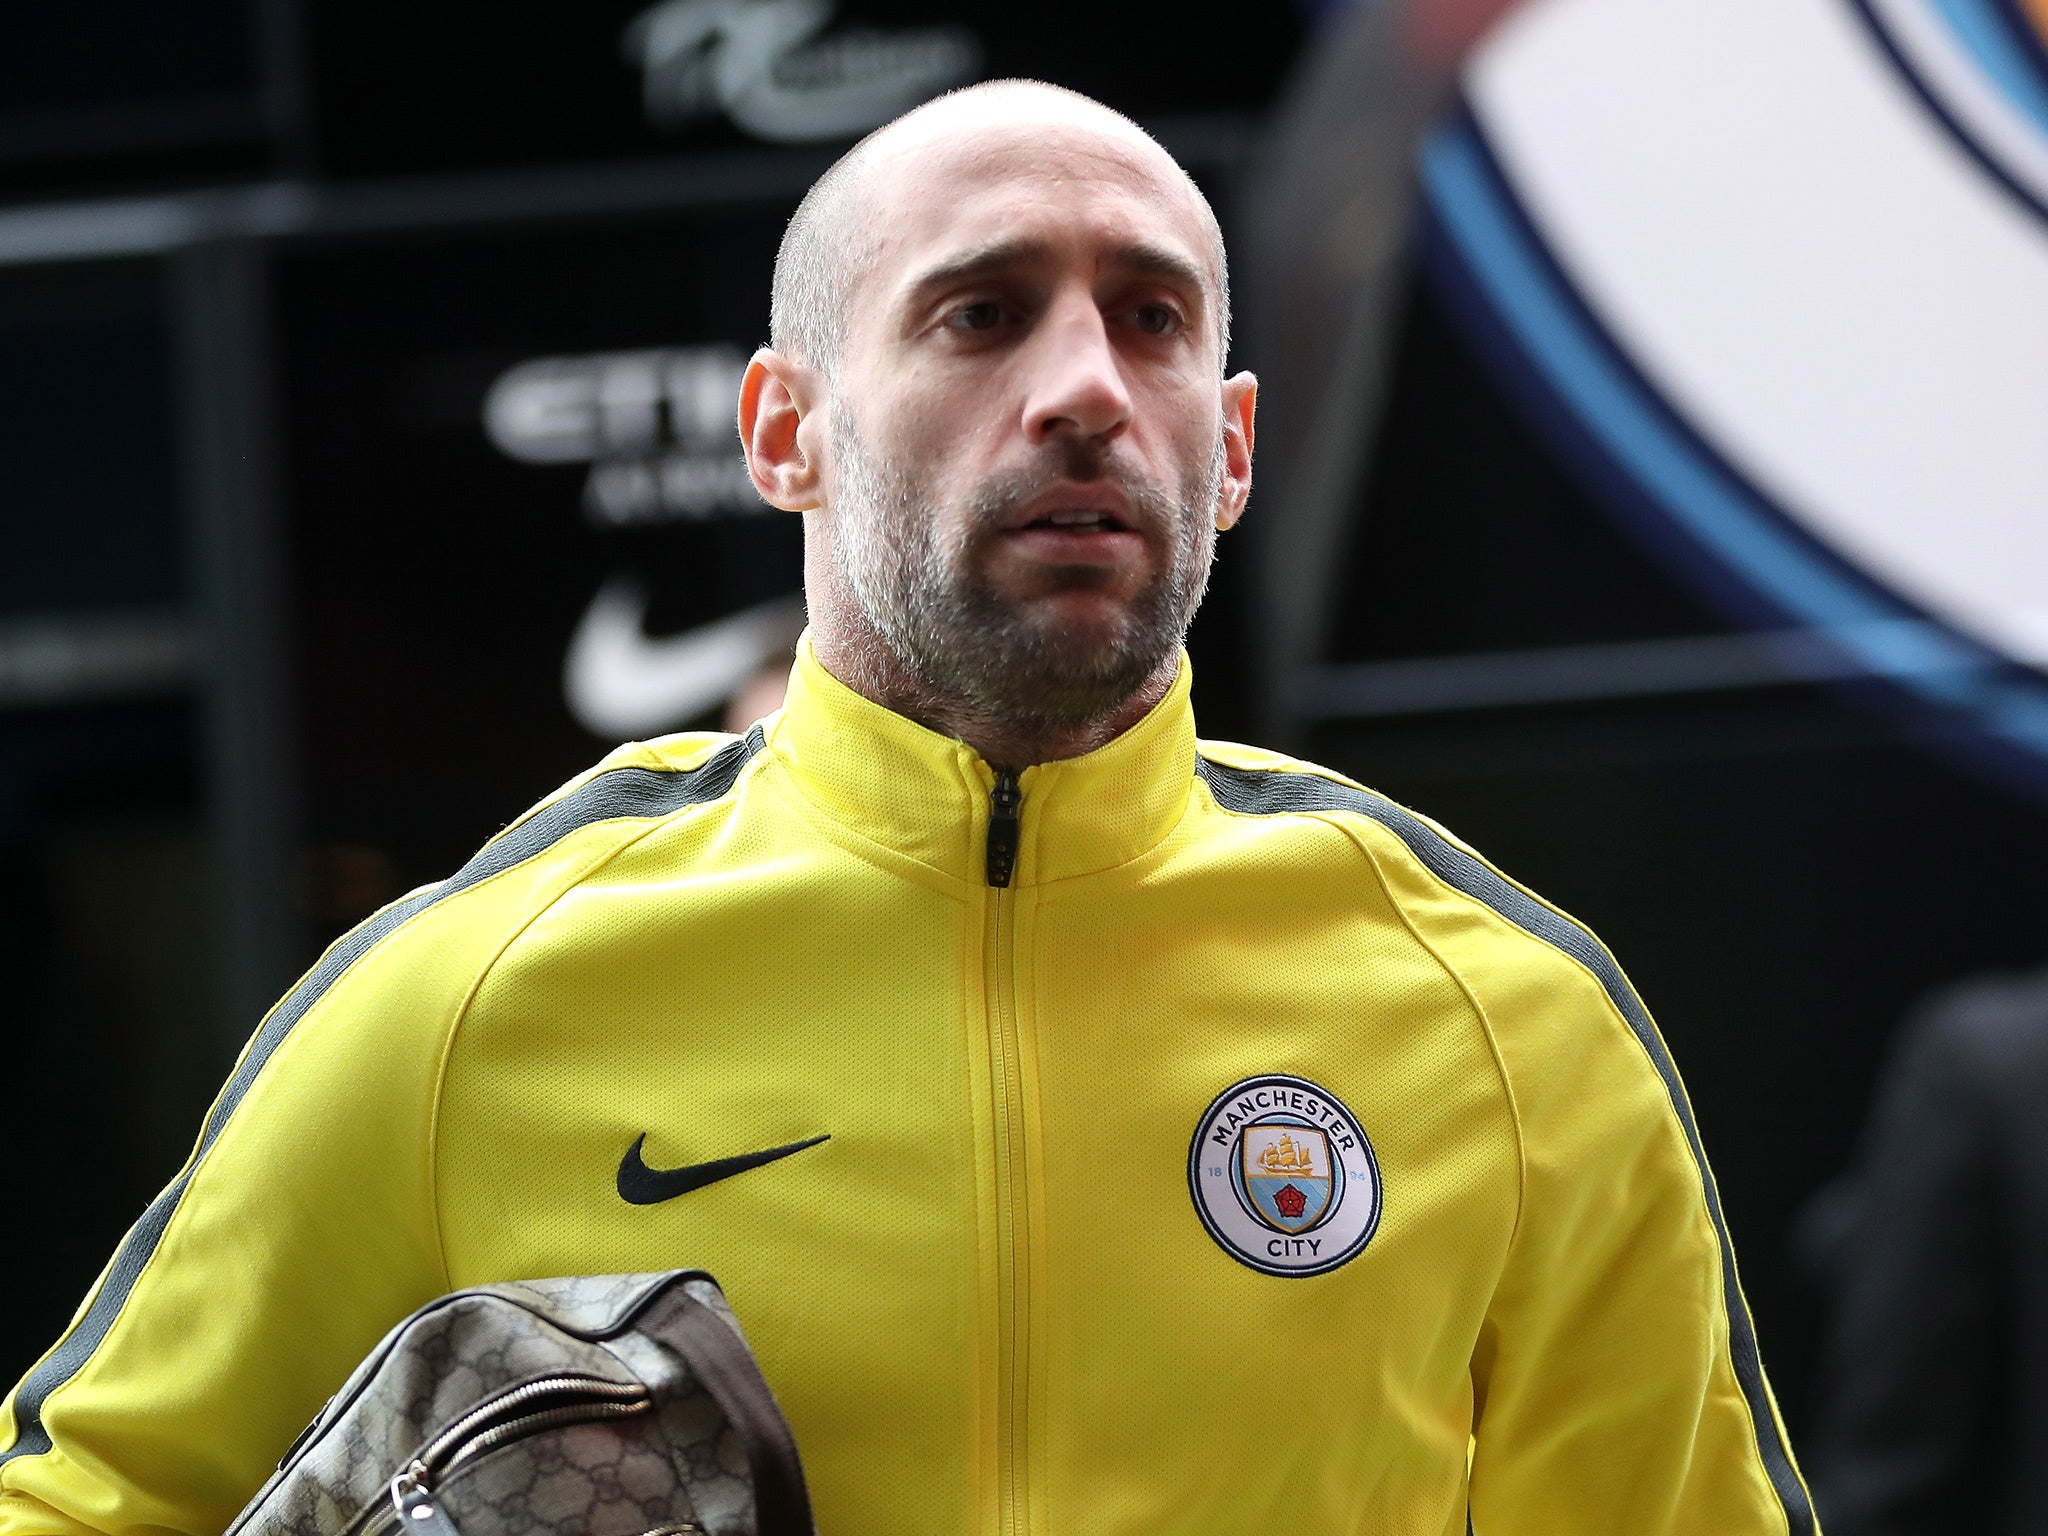 Pablo Zabaleta set to leave Manchester City this summer after nine